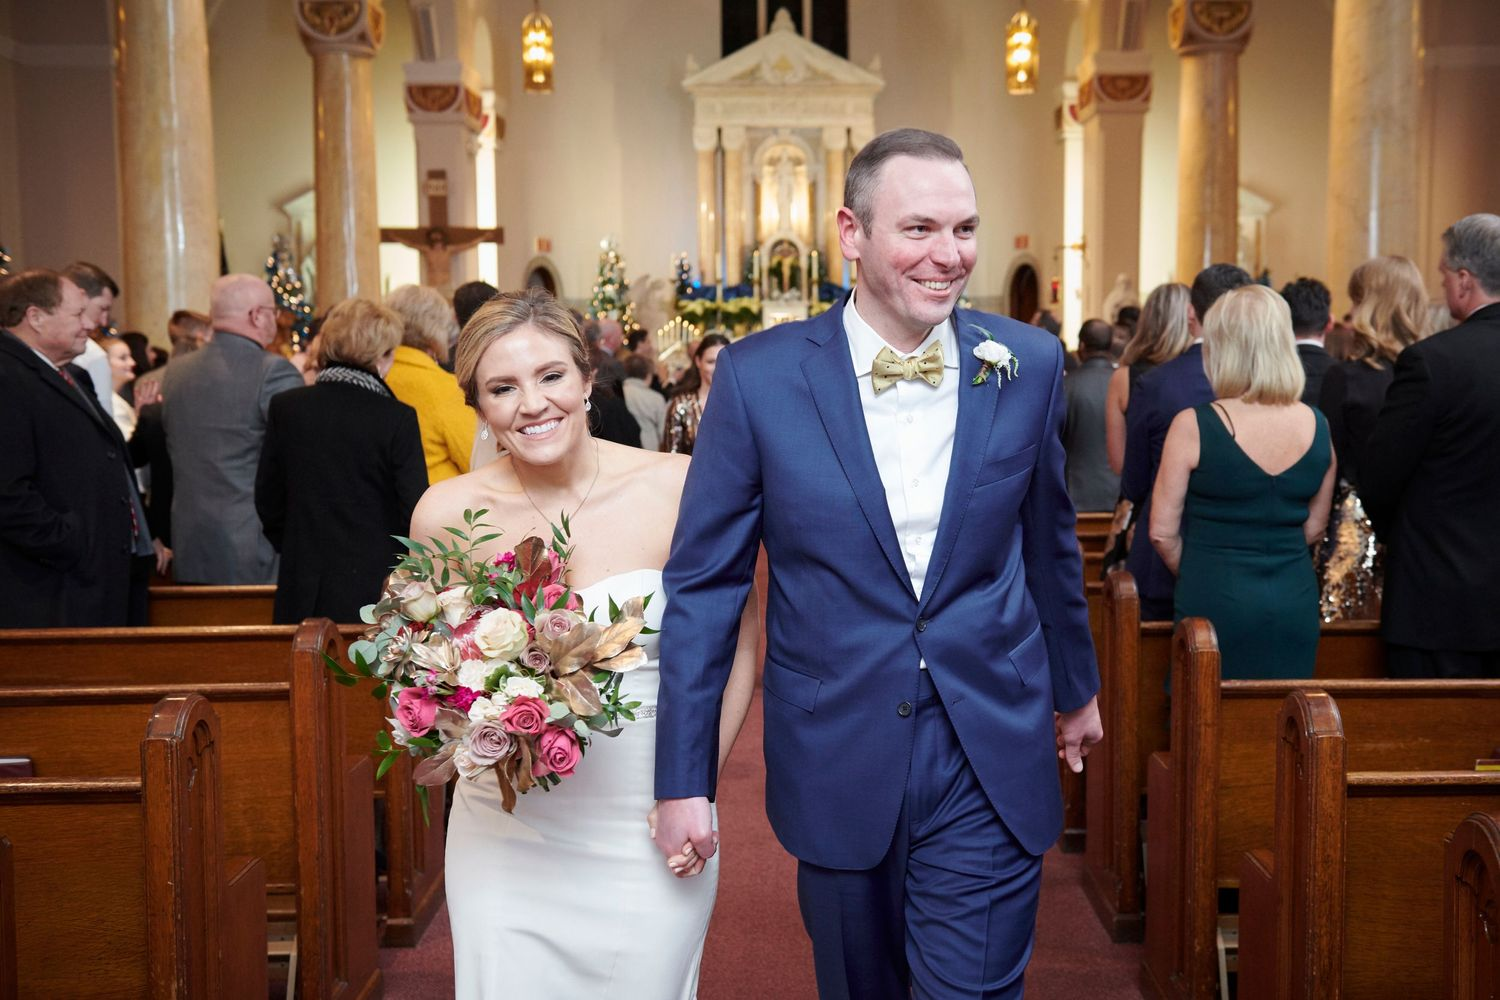 bride and groom recessional down isle at church